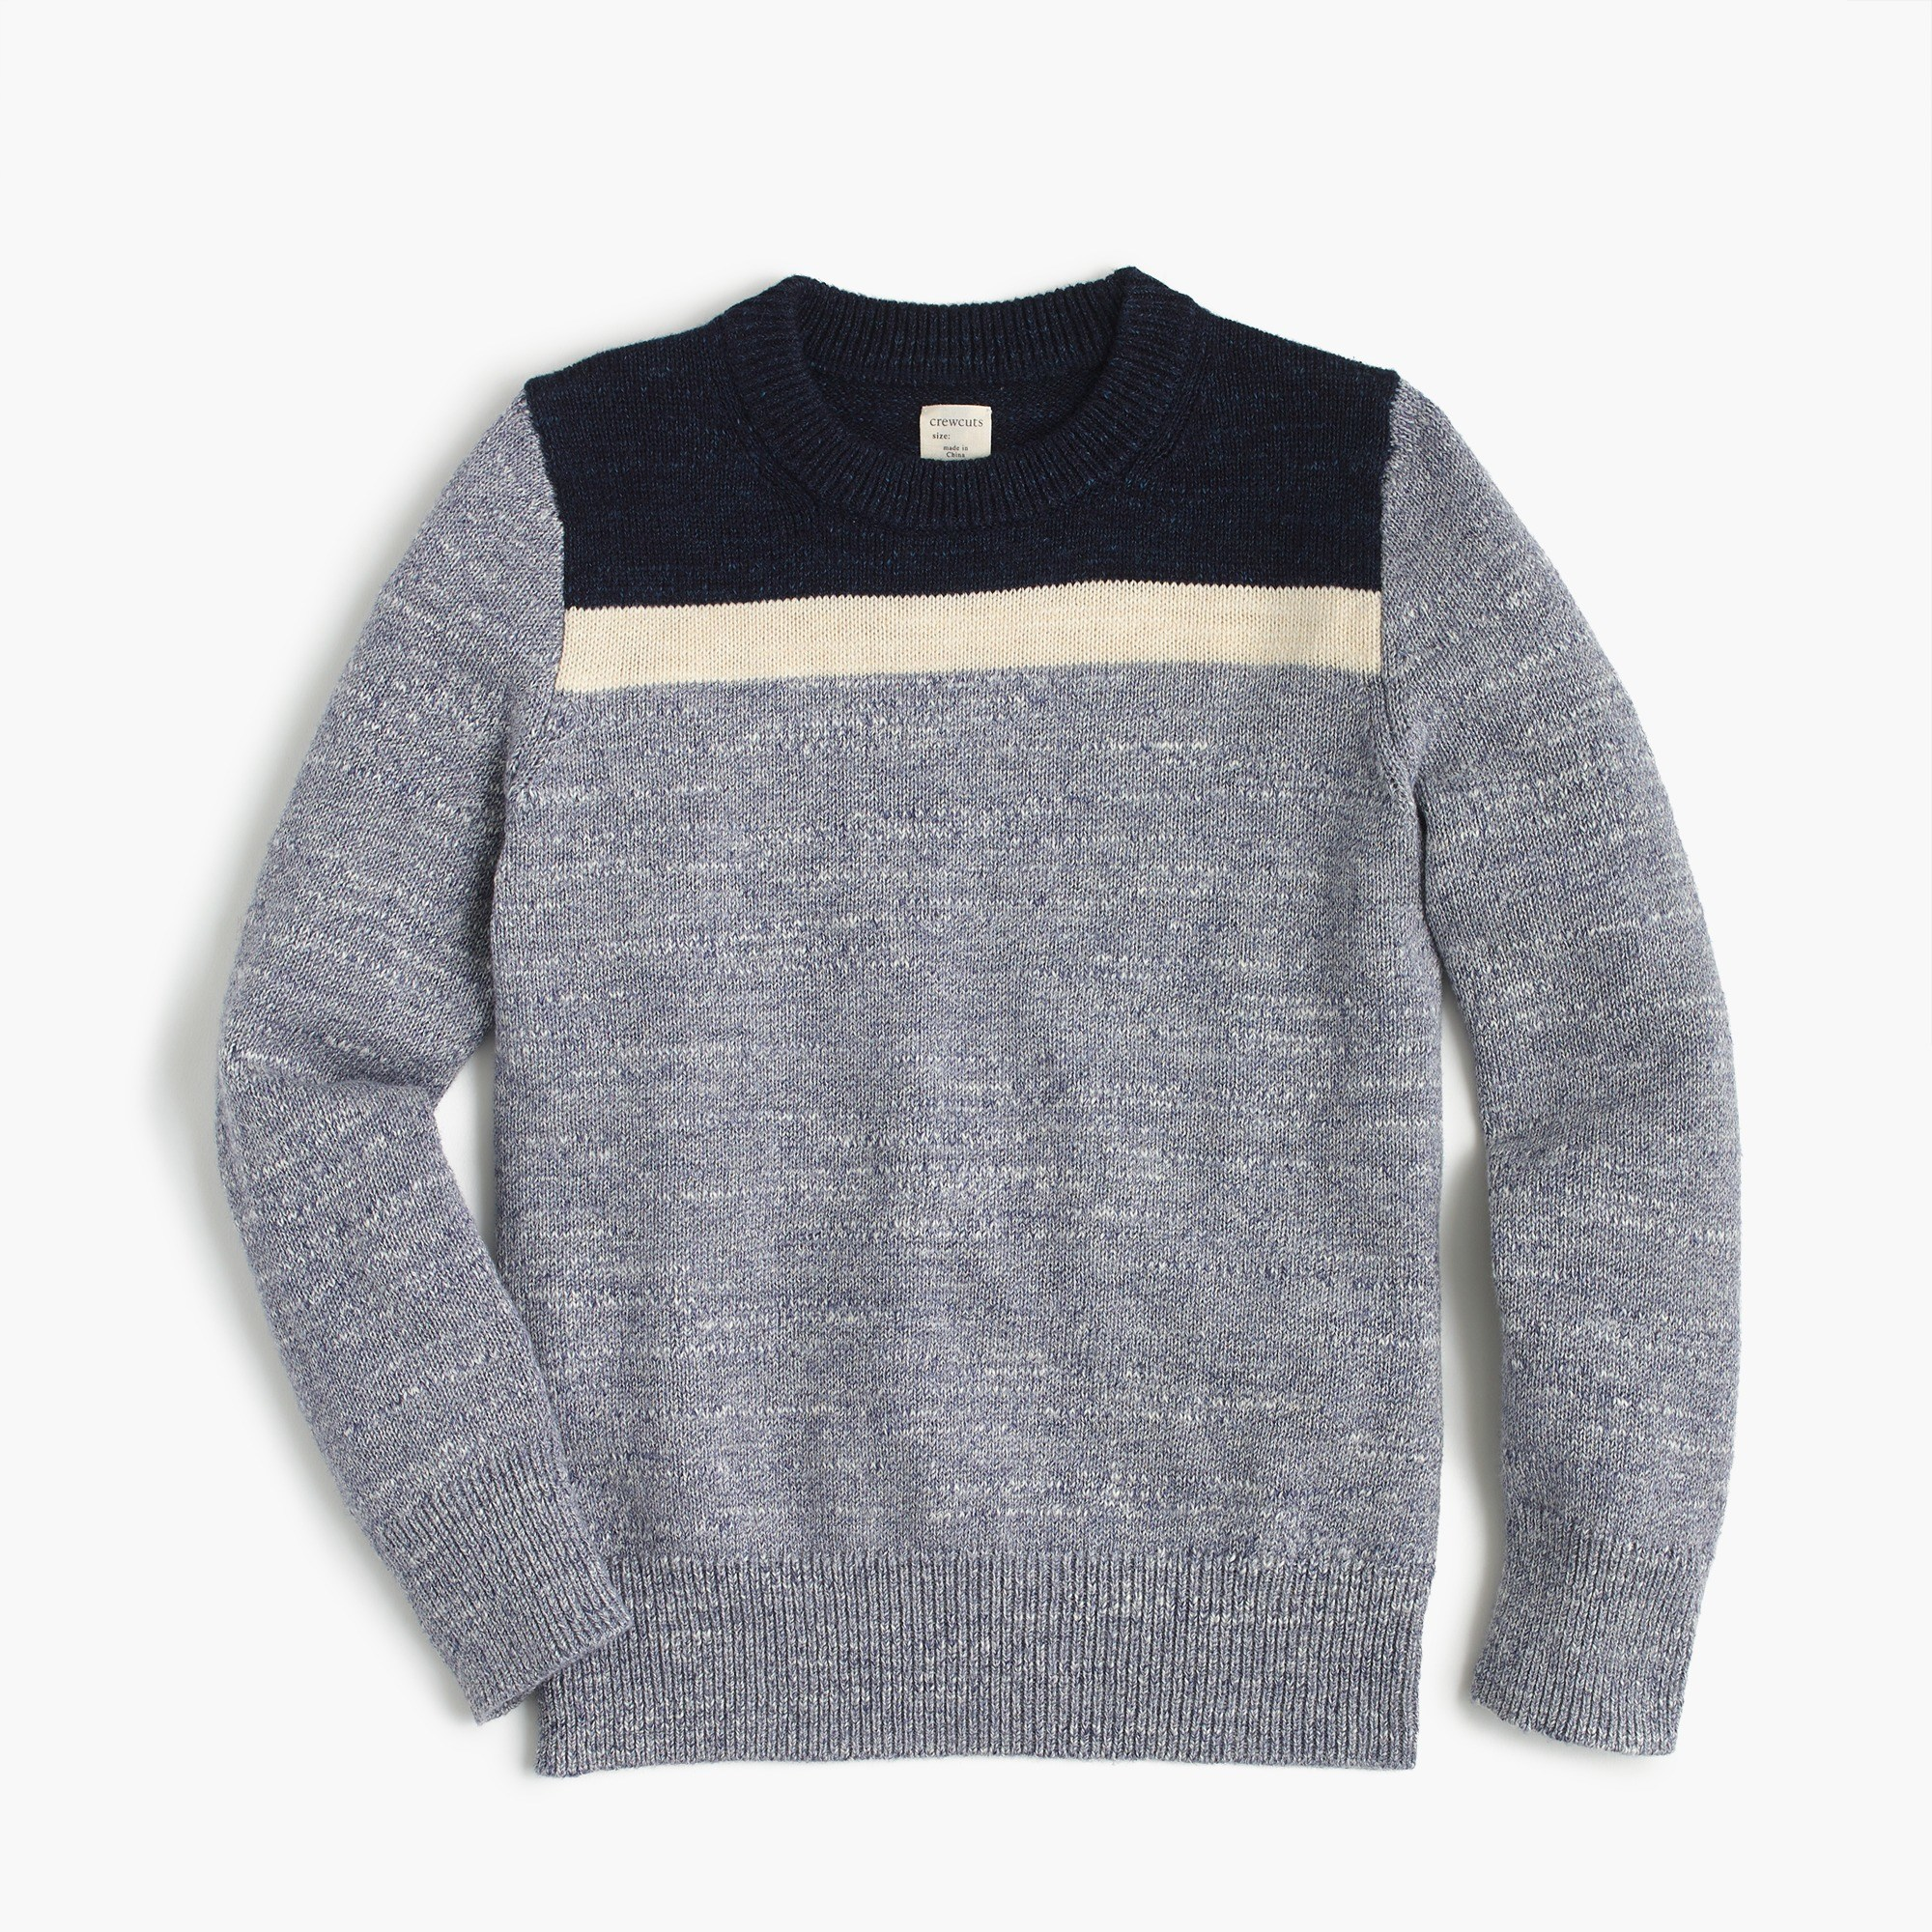 Boys' Colorblocked Cotton Crewneck Sweater - Boys' Sweaters | J.Crew